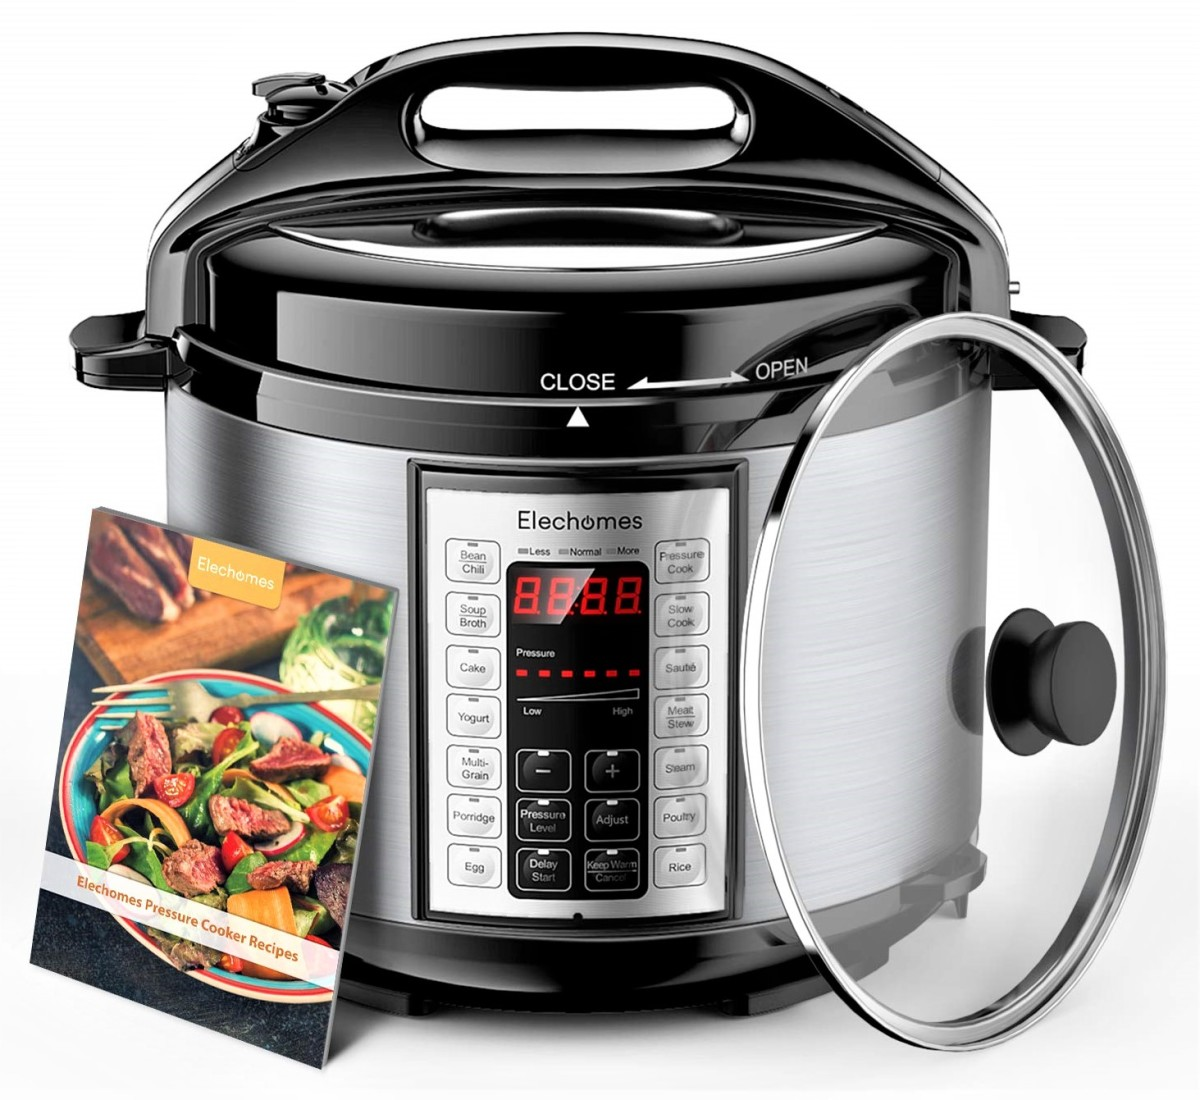 Elechomes 9-in-1 Electric Pressure Cooker